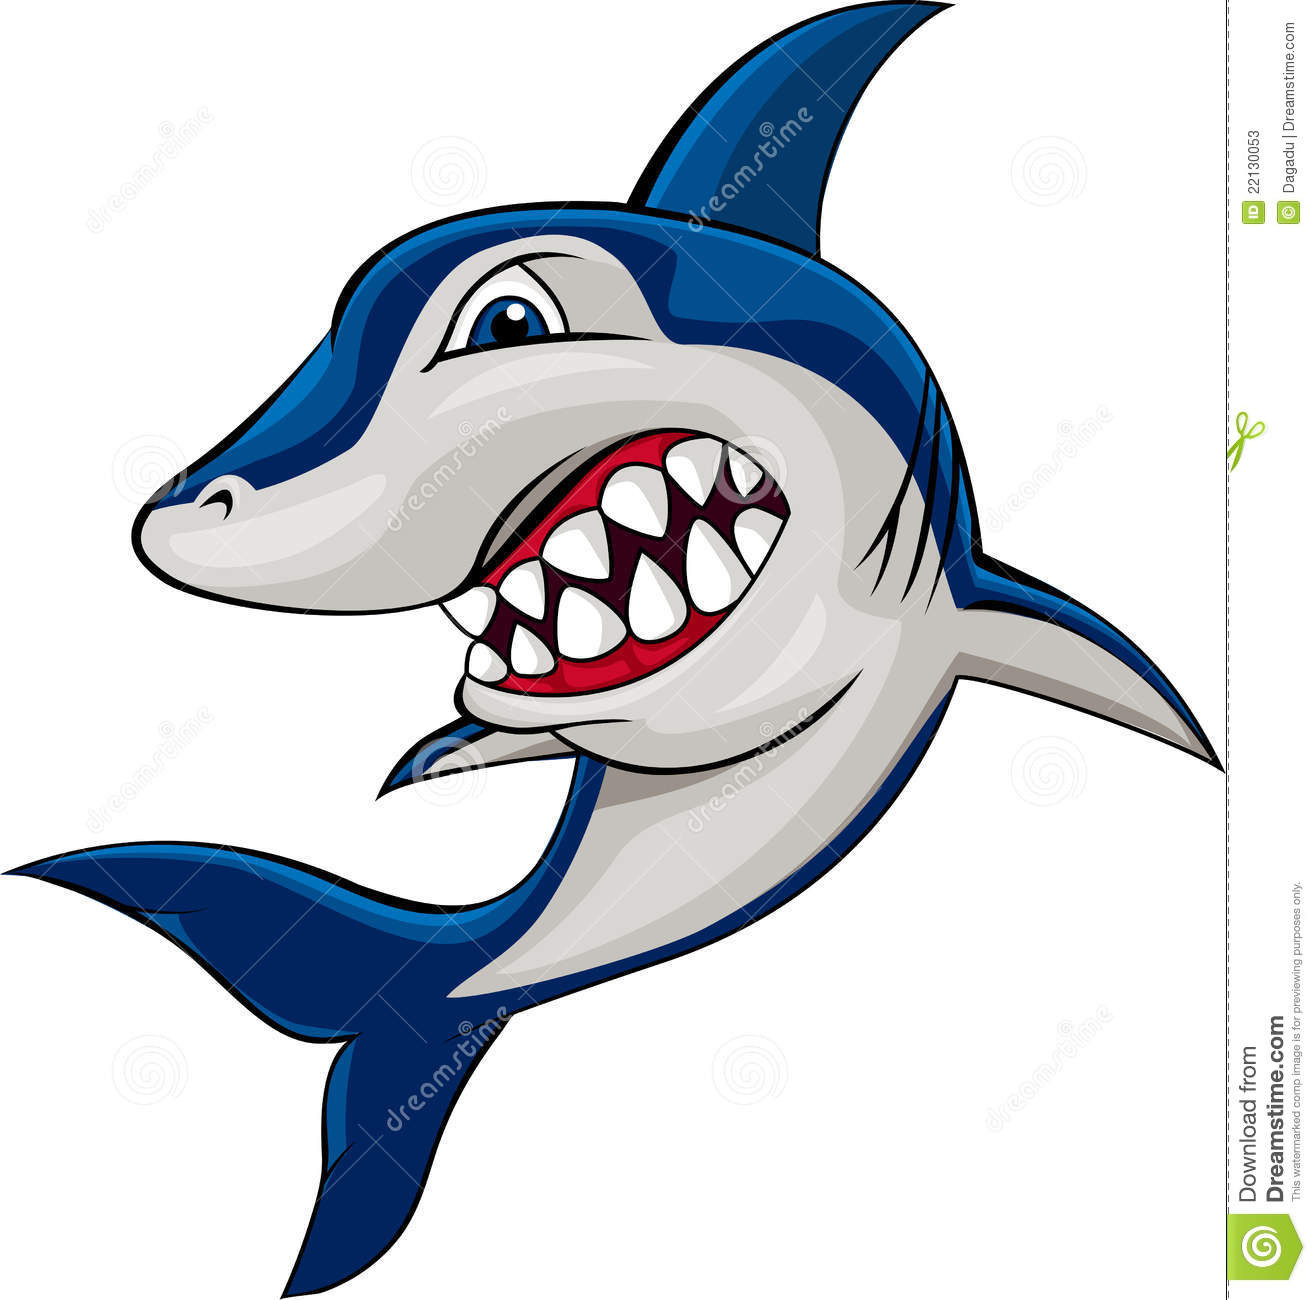 hight resolution of 1316x1300 clipart sharks free